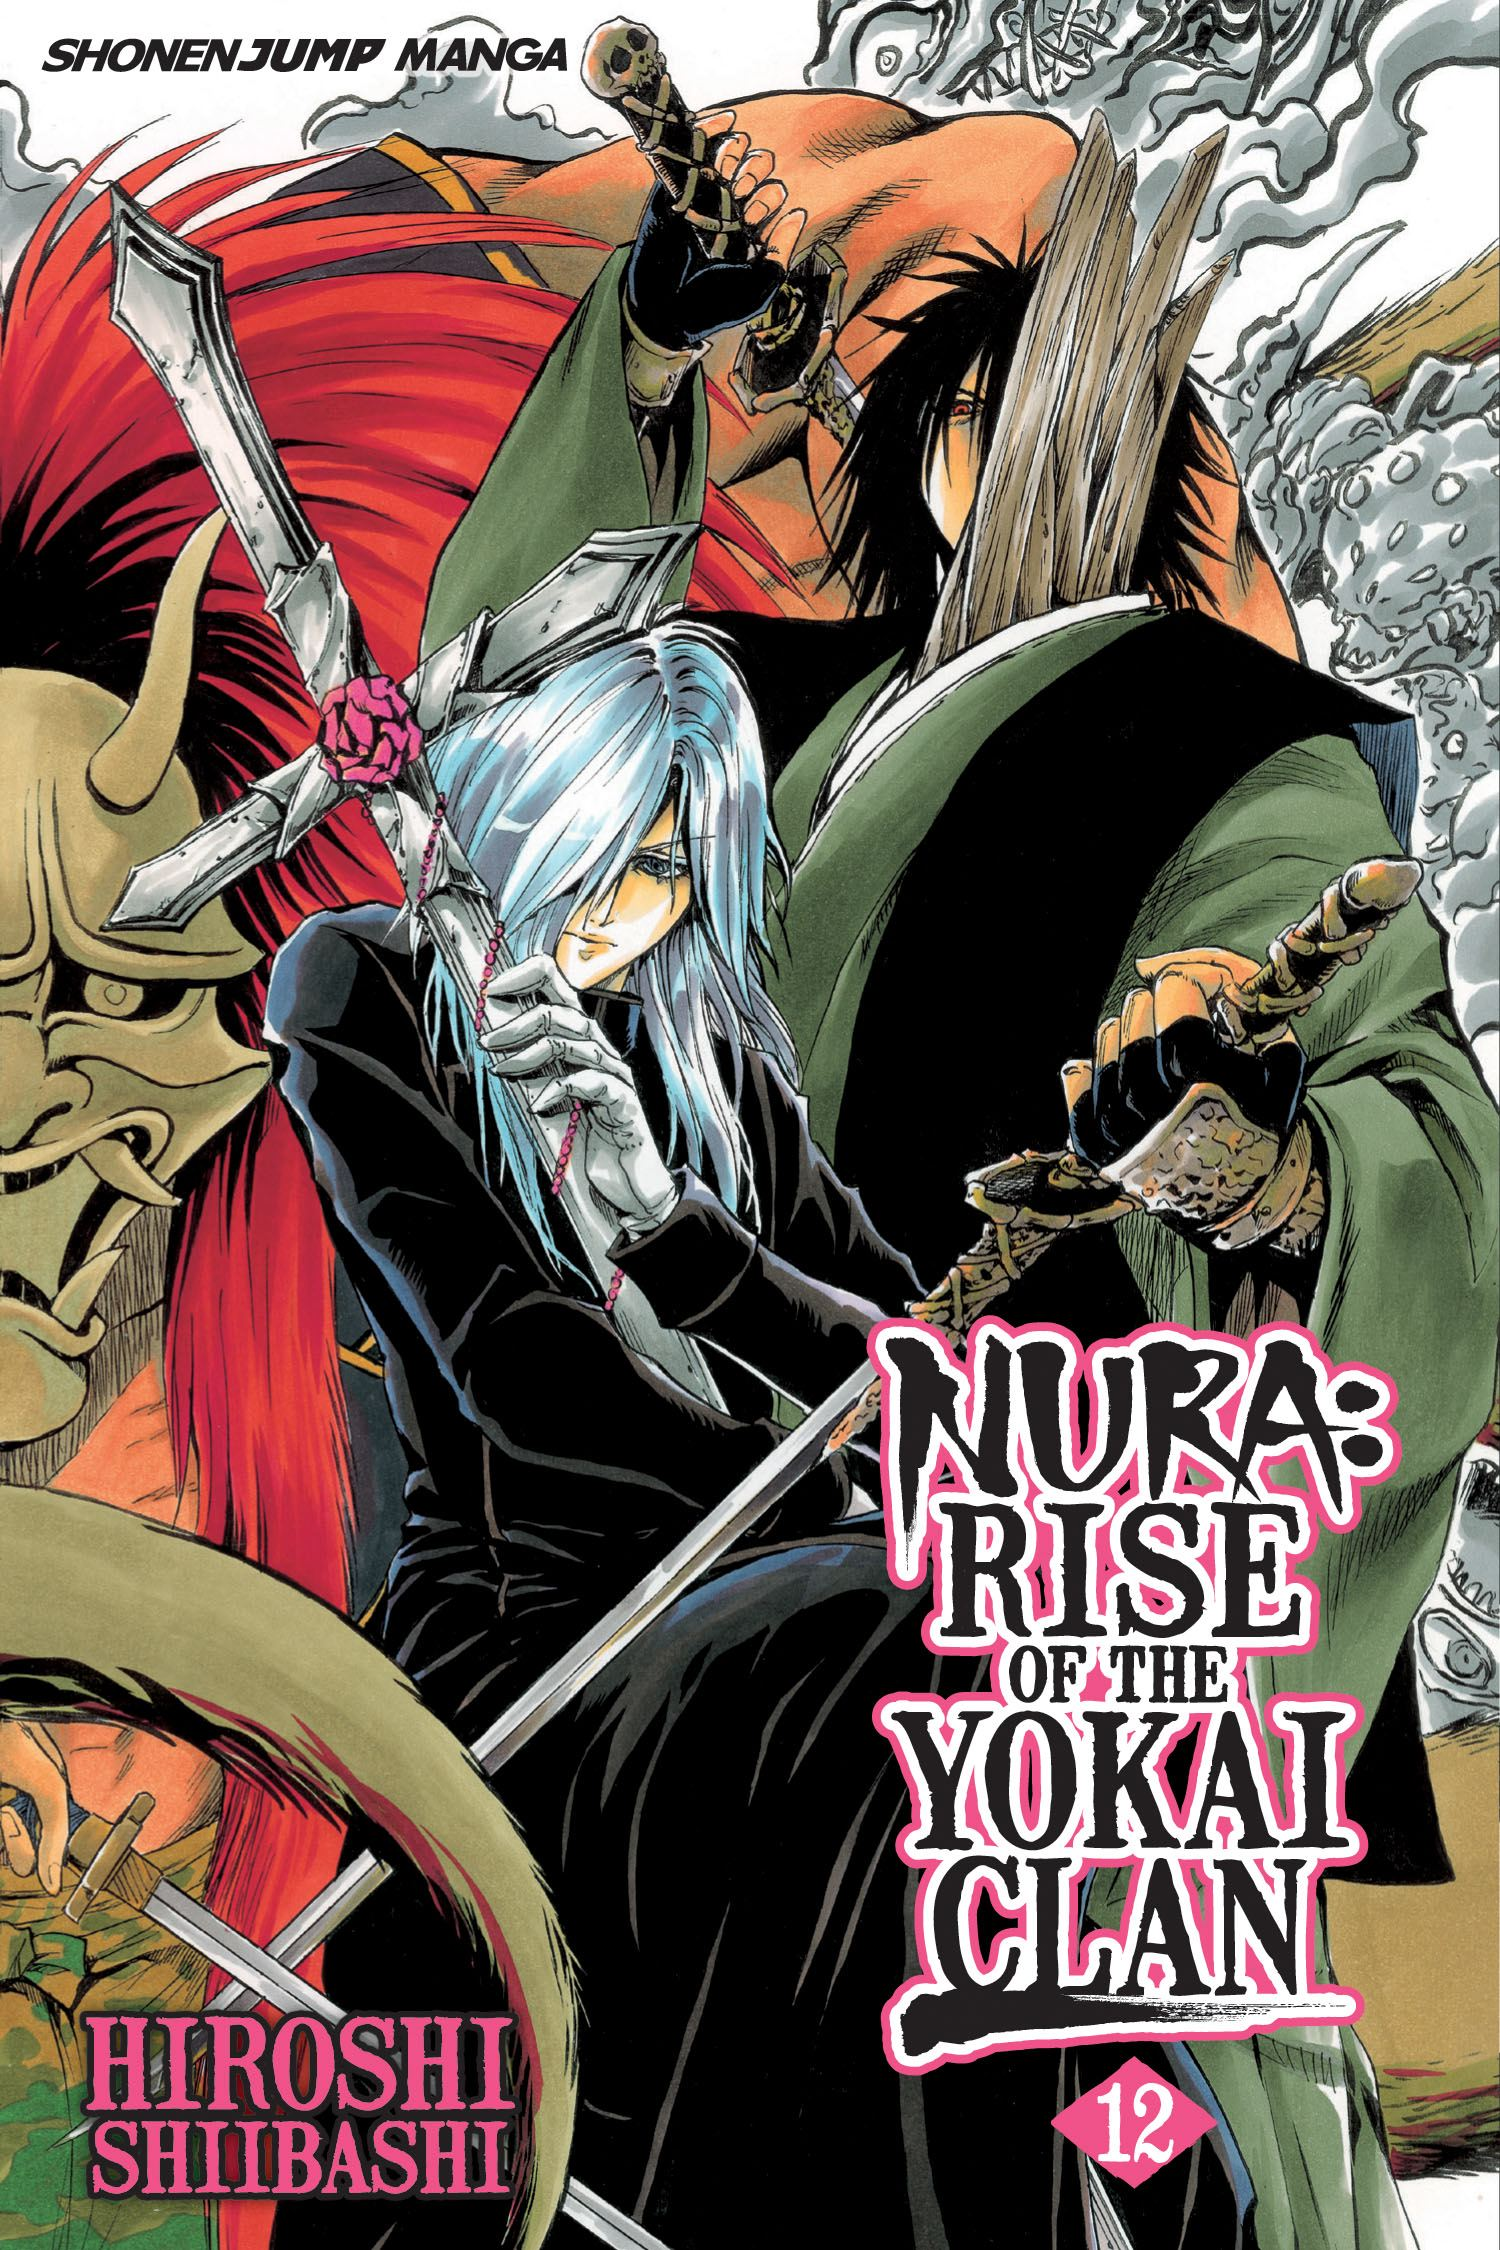 Nura rise of the yokai clan vol 12 9781421541419 hr